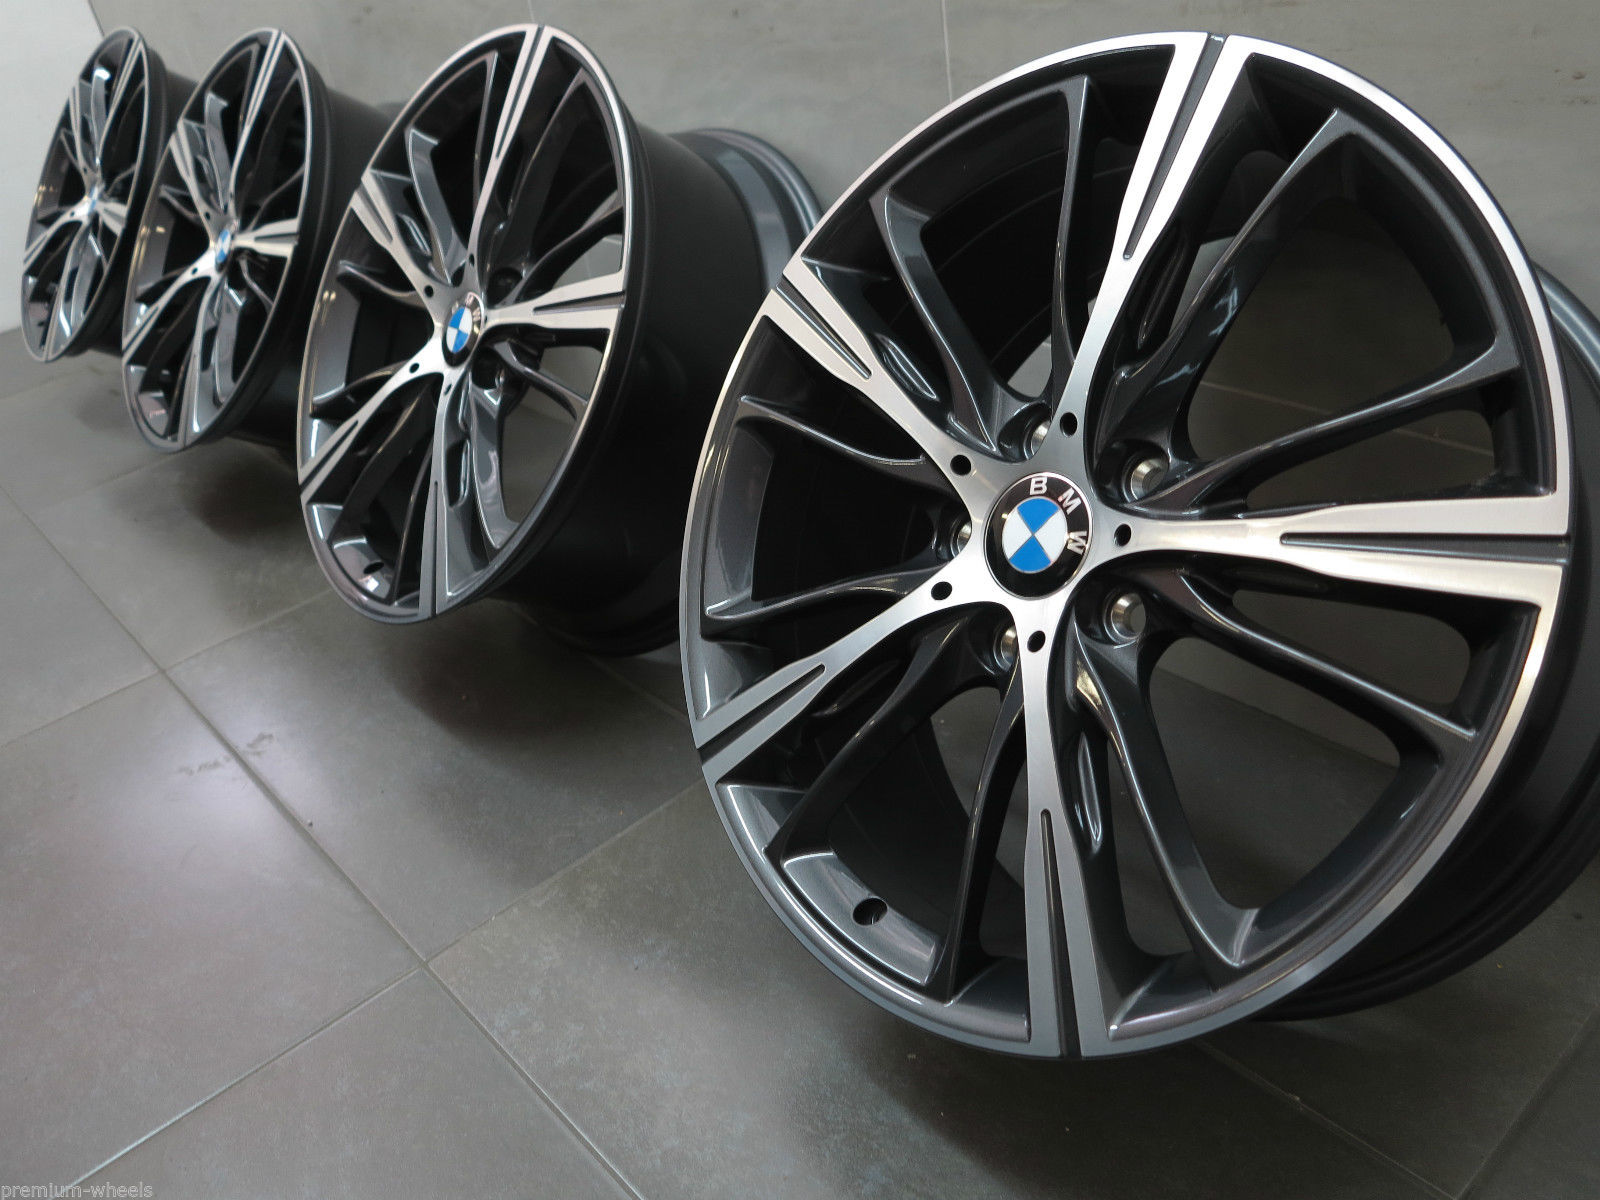 styles series rim for bmw itm wheel alloy style